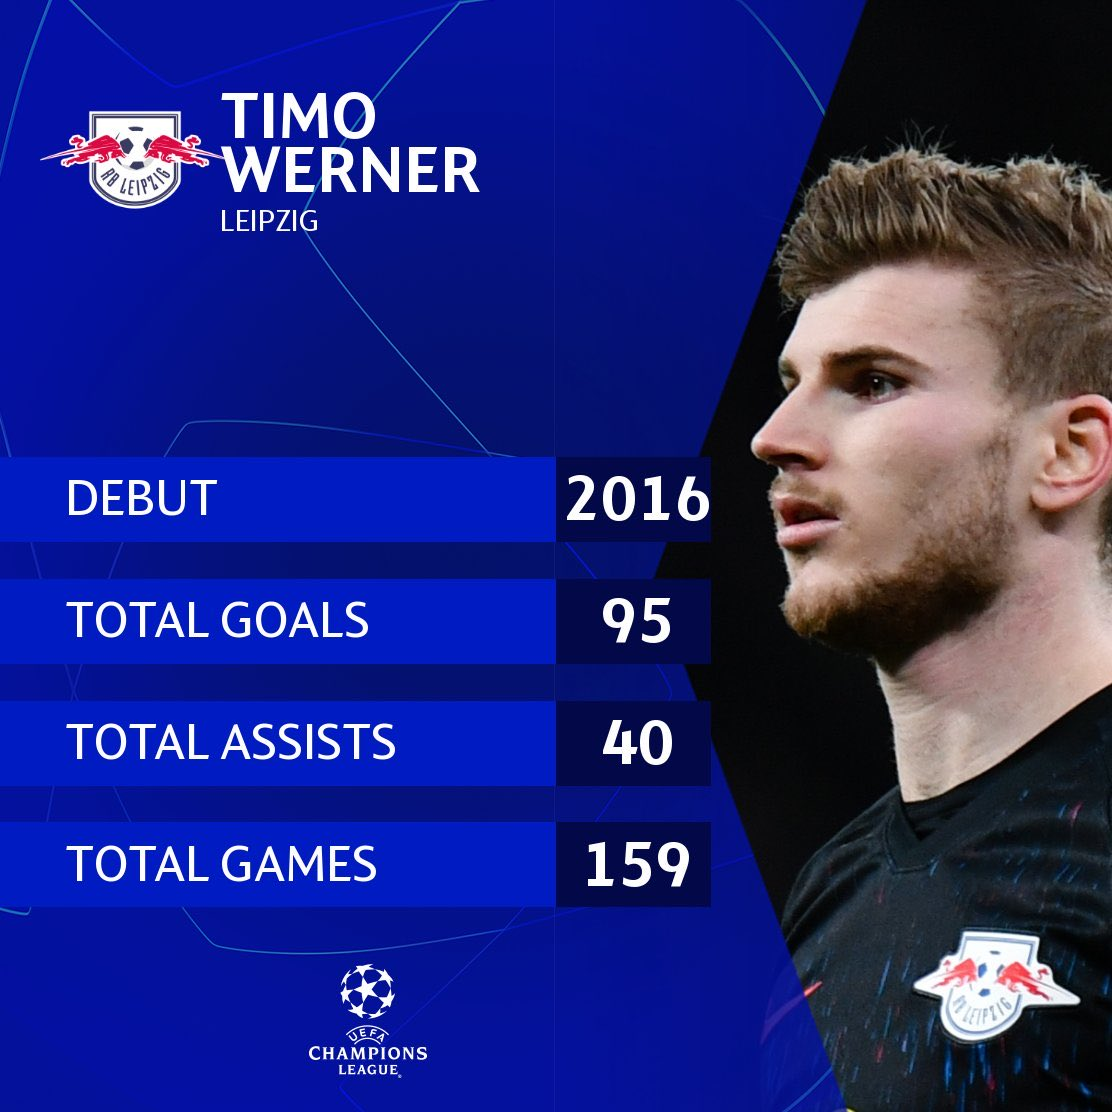 If Timo Werner can repeat these stats for @ChelseaFC then we are going to be an amazing striker for us. He needs the service & I have full confidence in Hakim Ziyech,Mason Mount, Pulisic, Tammy Abraham, Hudson Odoi, Loftus Cheek, Jorginho, & co to provide the service he will love